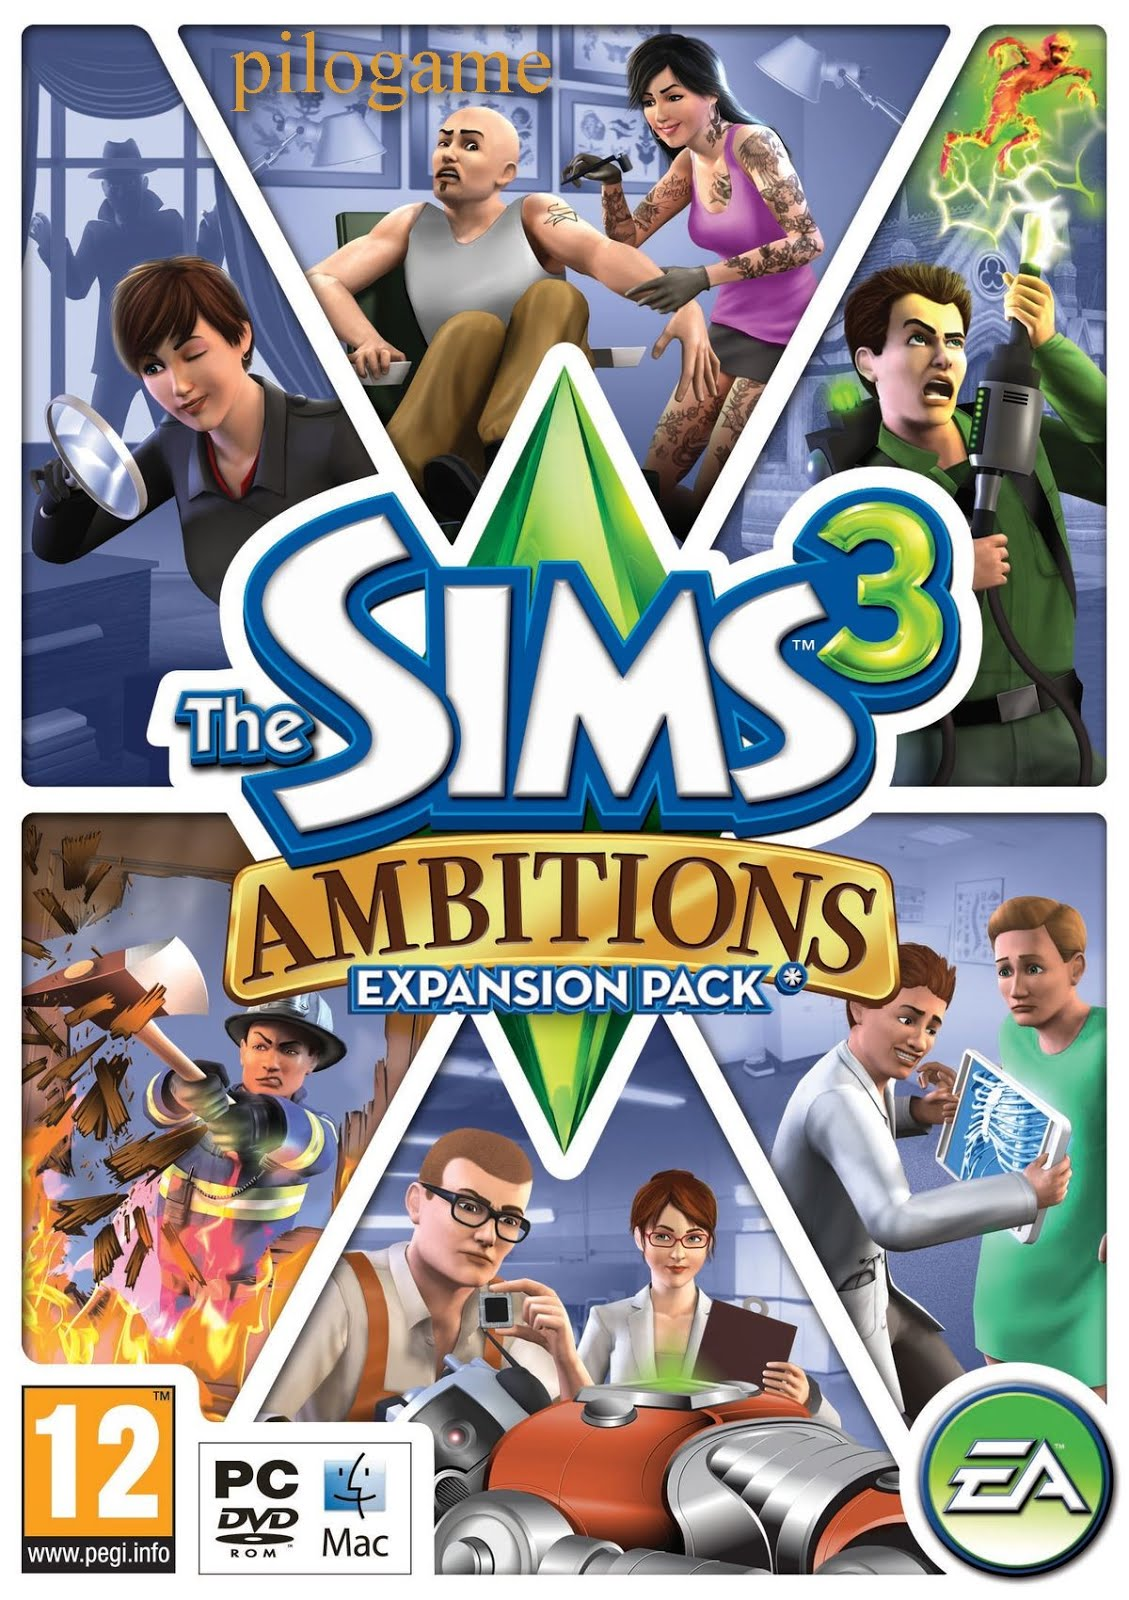 sims 4 for free mac